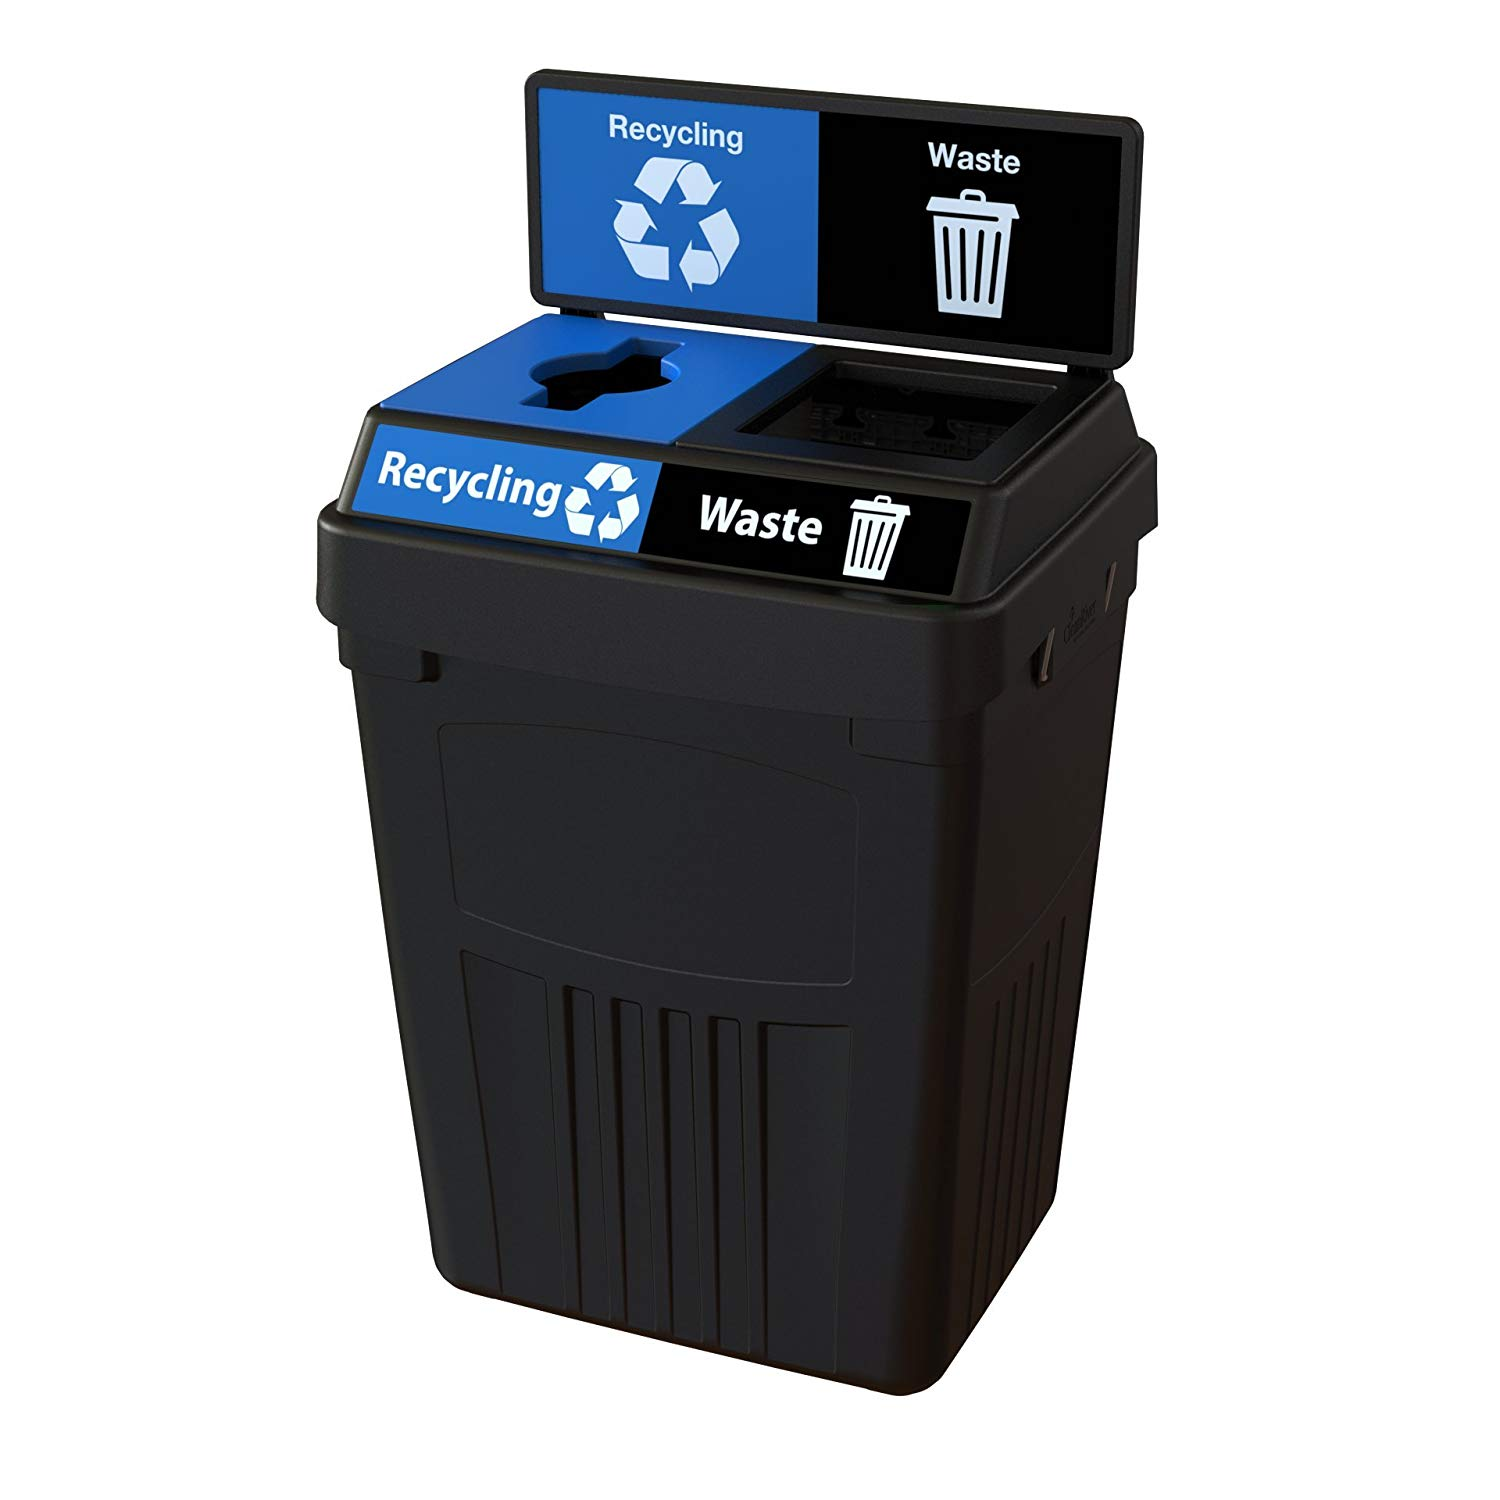 CleanRiver Flex E bin. Indoor and outdoor sturdy 2-in-1 waste and recycling bin with back board. Collect 2 separate waste streams in one bin. 50-gallon-Black (FX50B-BK2-R-W)